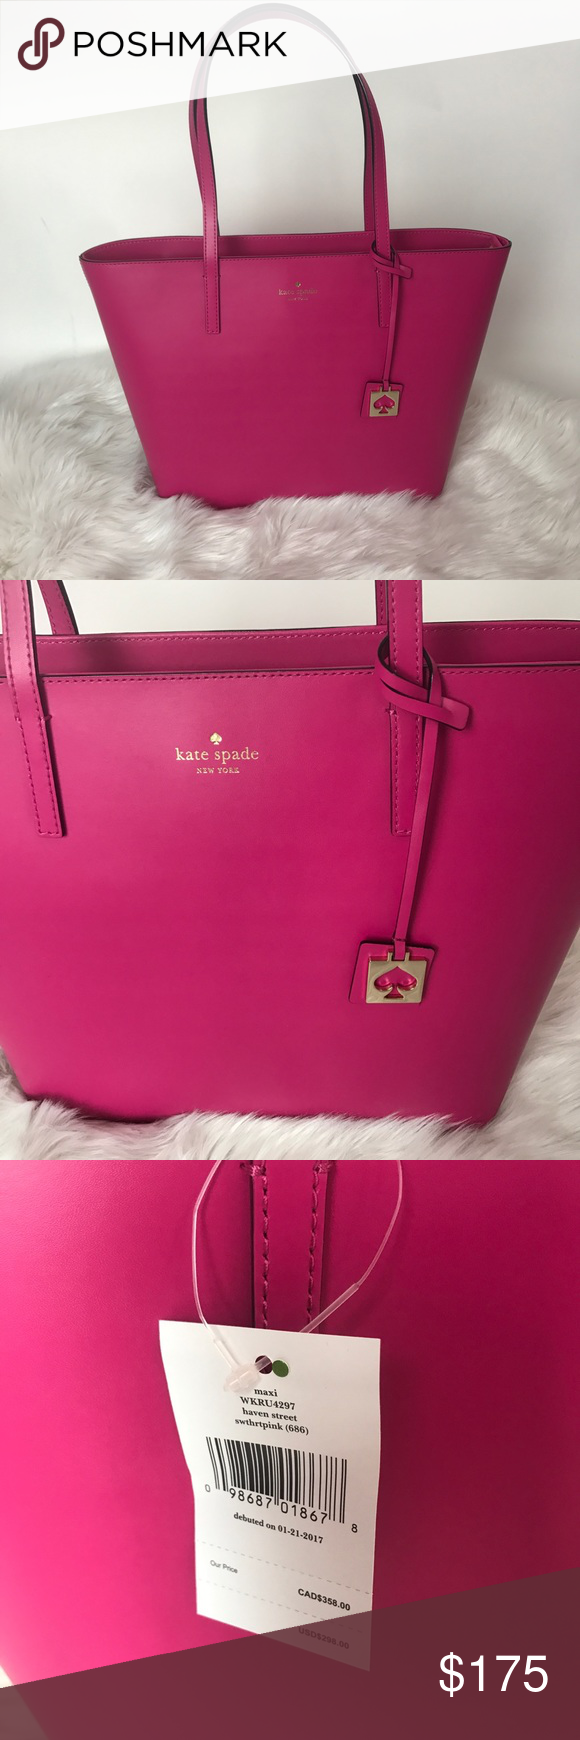 Kate Spade Maxi Haven Street Sweetheart Pink Bag This listing is for a Kate Spade Maxi Haven Street Sweetheart Pink Tote Bag.  This bag measures 11.7 (h) x 12.9 (w) x 5.5 (d).  Bag has a smooth leather finish with matching trim and 14k gold hardware.  Zip top closure with 2 interior pockets and interior zip pocket.  Kate Spade signature lining in pink. kate spade Bags Totes